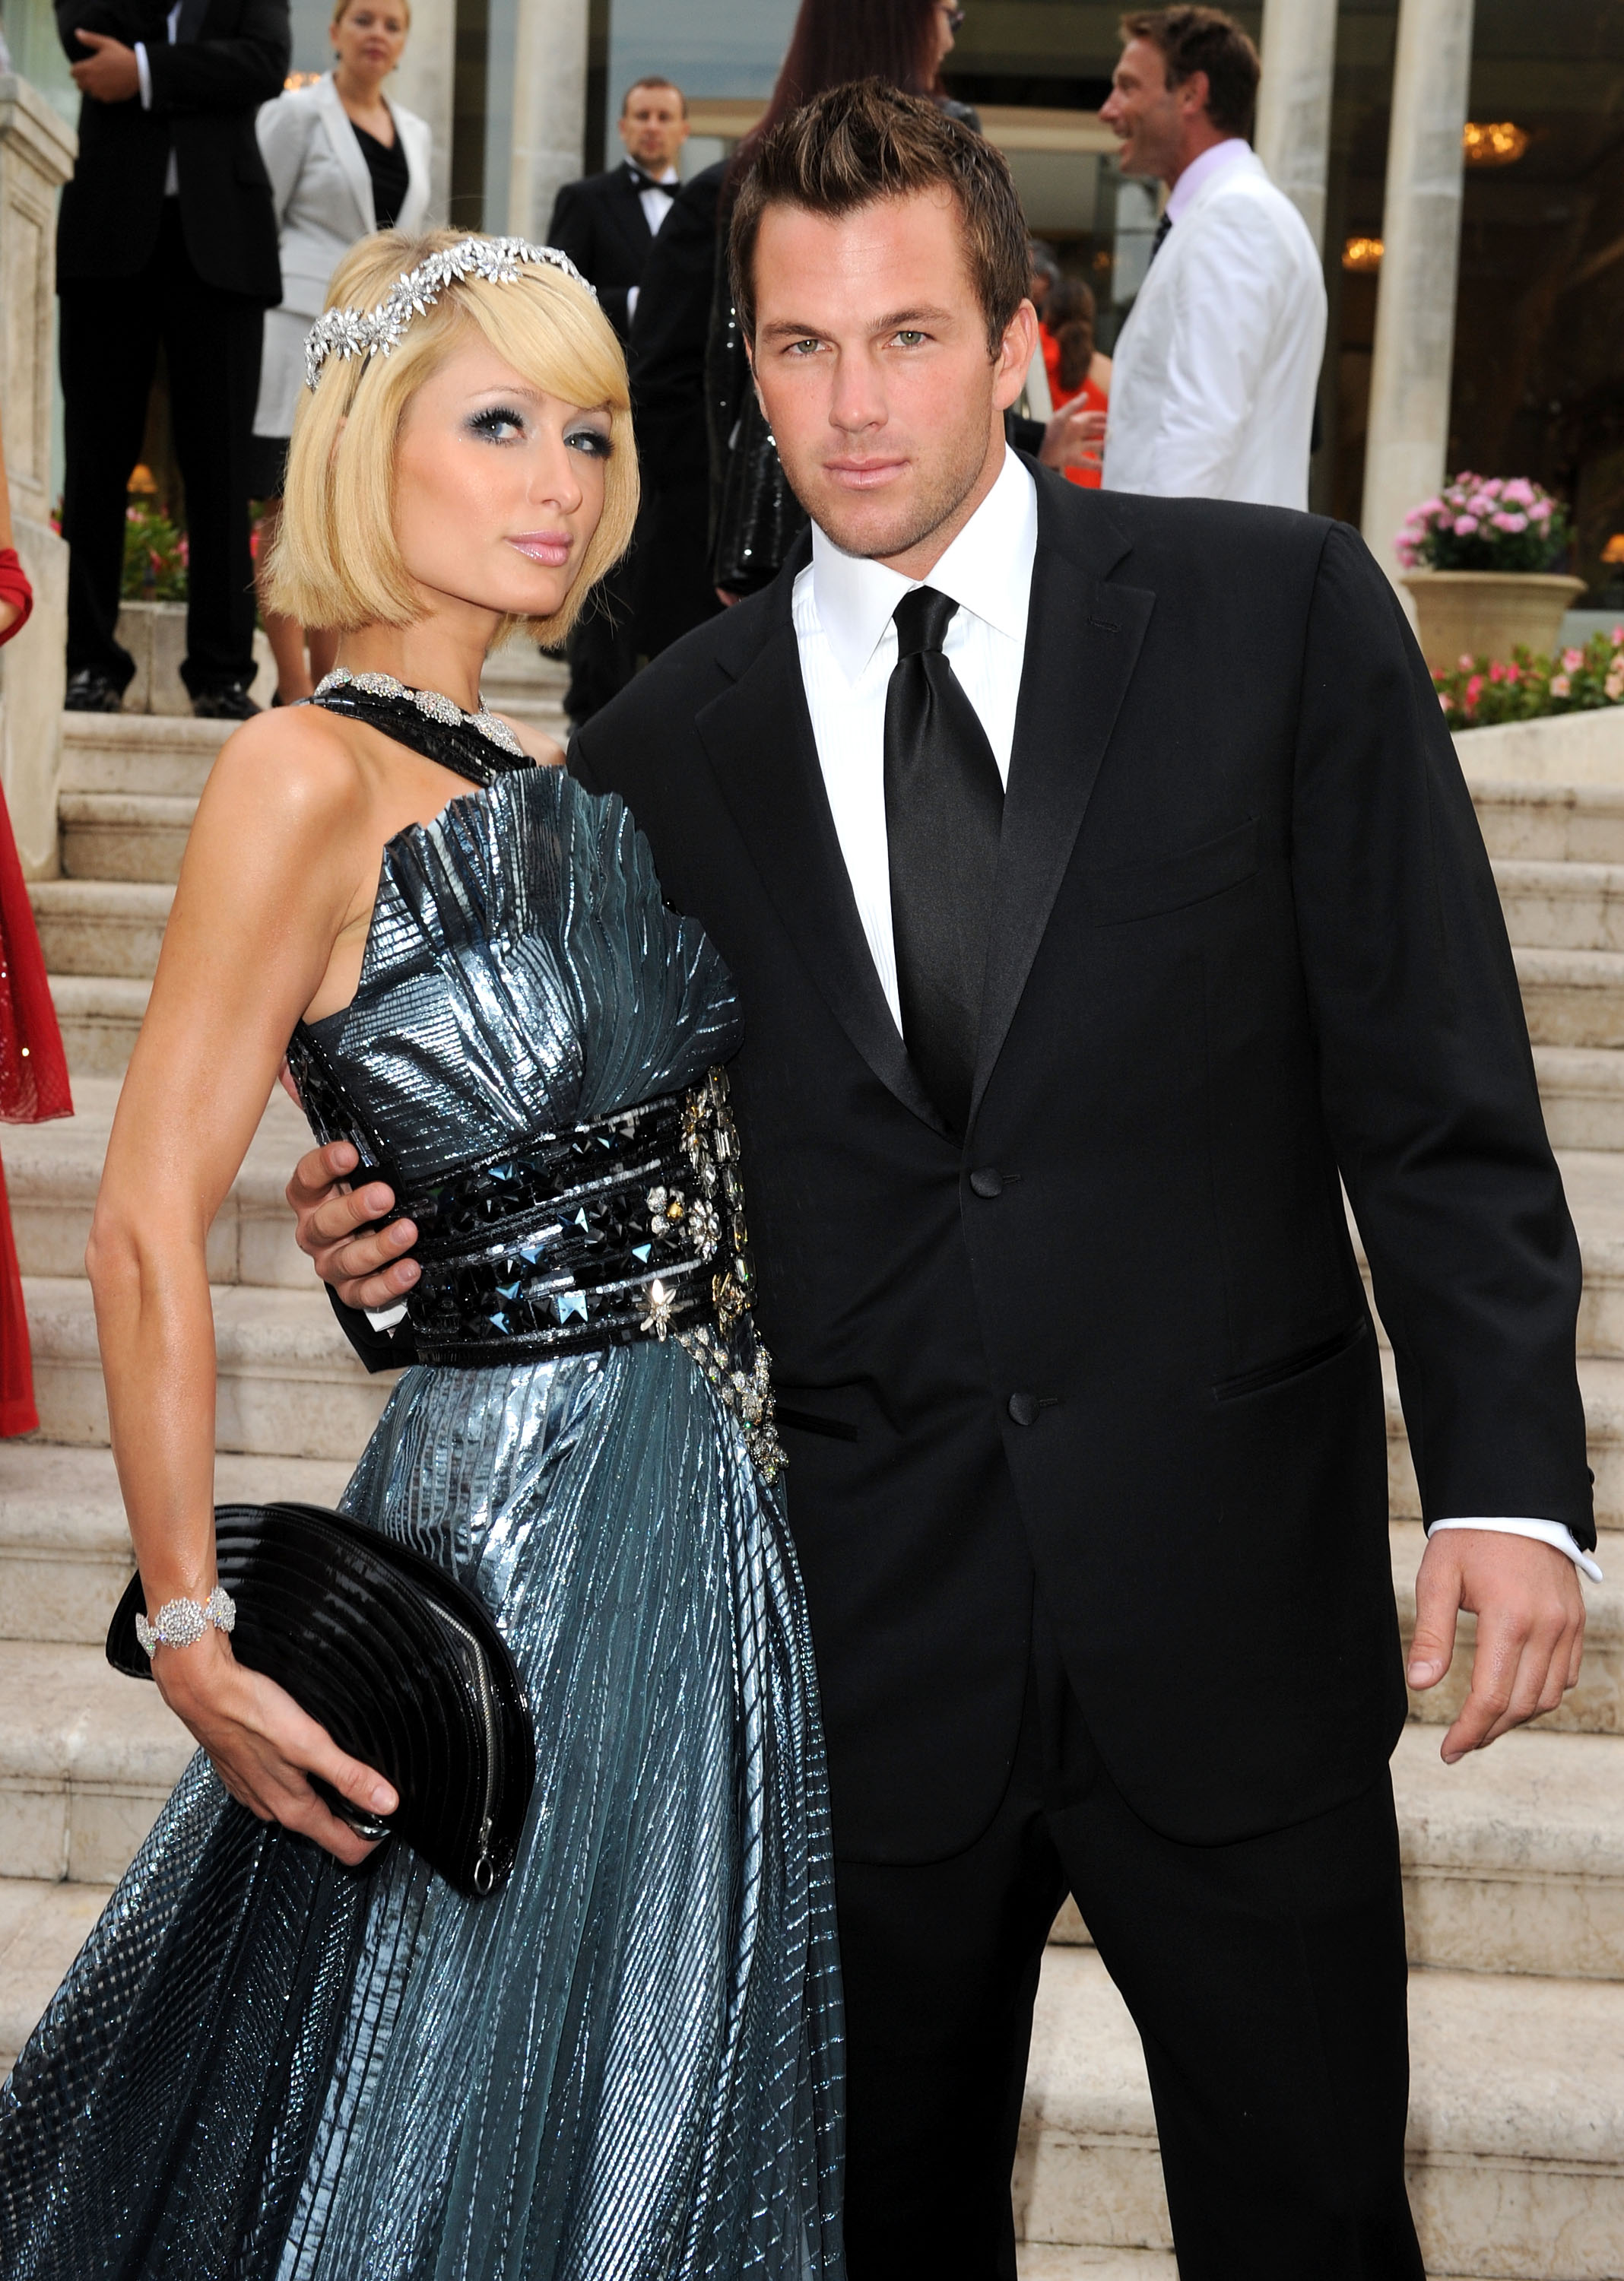 ANTIBES, FRANCE - MAY 21: Doug Reinhardt and Paris Hilton attend the amfAR Cinema Against AIDS 2009 benefit at the Hotel du Cap during the 62nd Annual Cannes Film Festival on May 21, 2009 in Antibes, France.